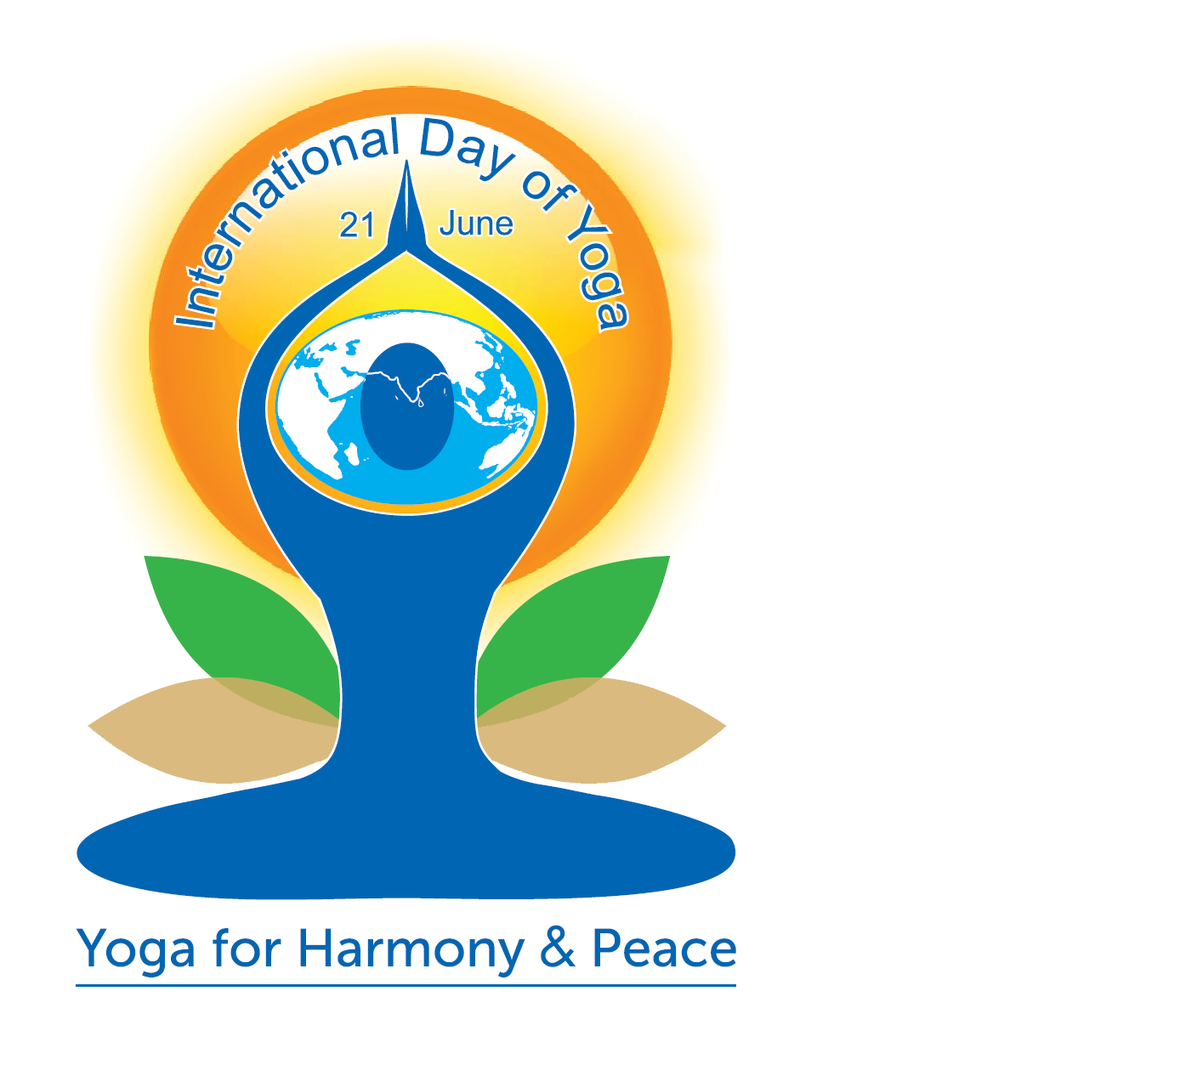 International yoga day logo png. We look forward to